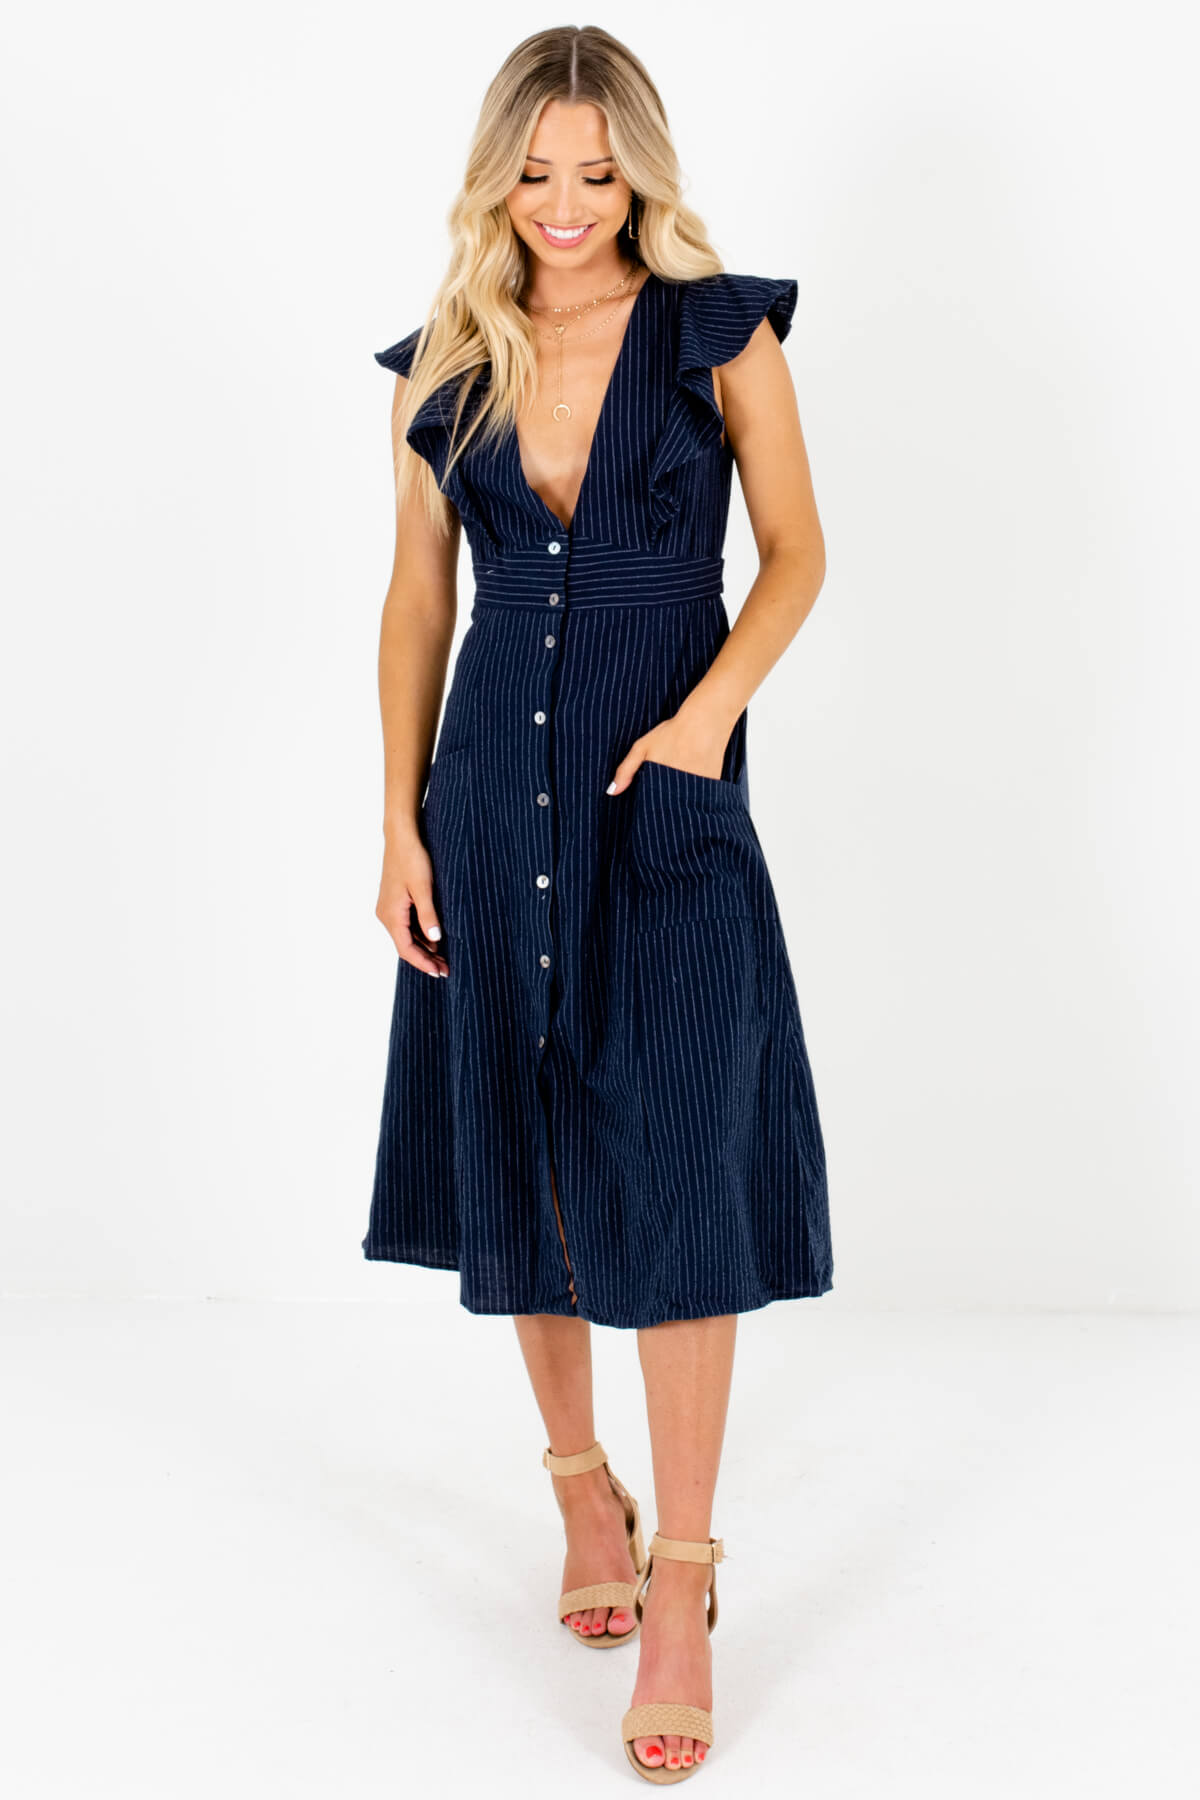 Navy Blue and White Striped Boutique Midi Dresses for Women